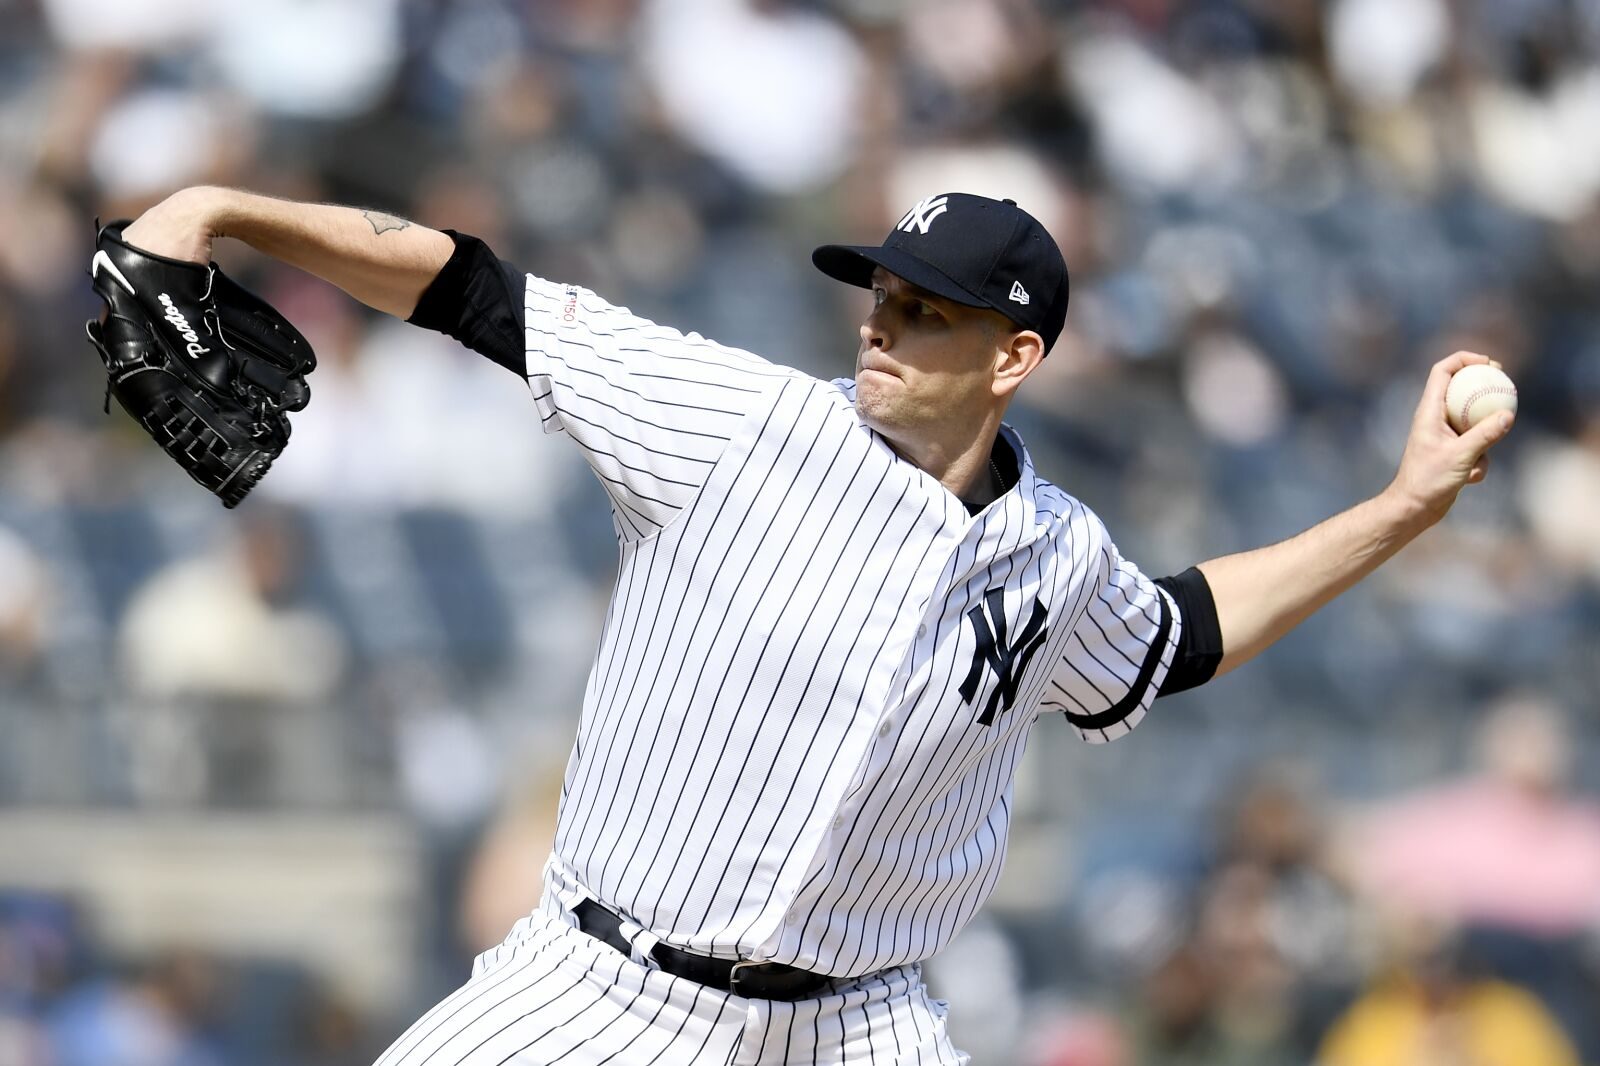 New York Yankees: James Paxton Needs an Opener